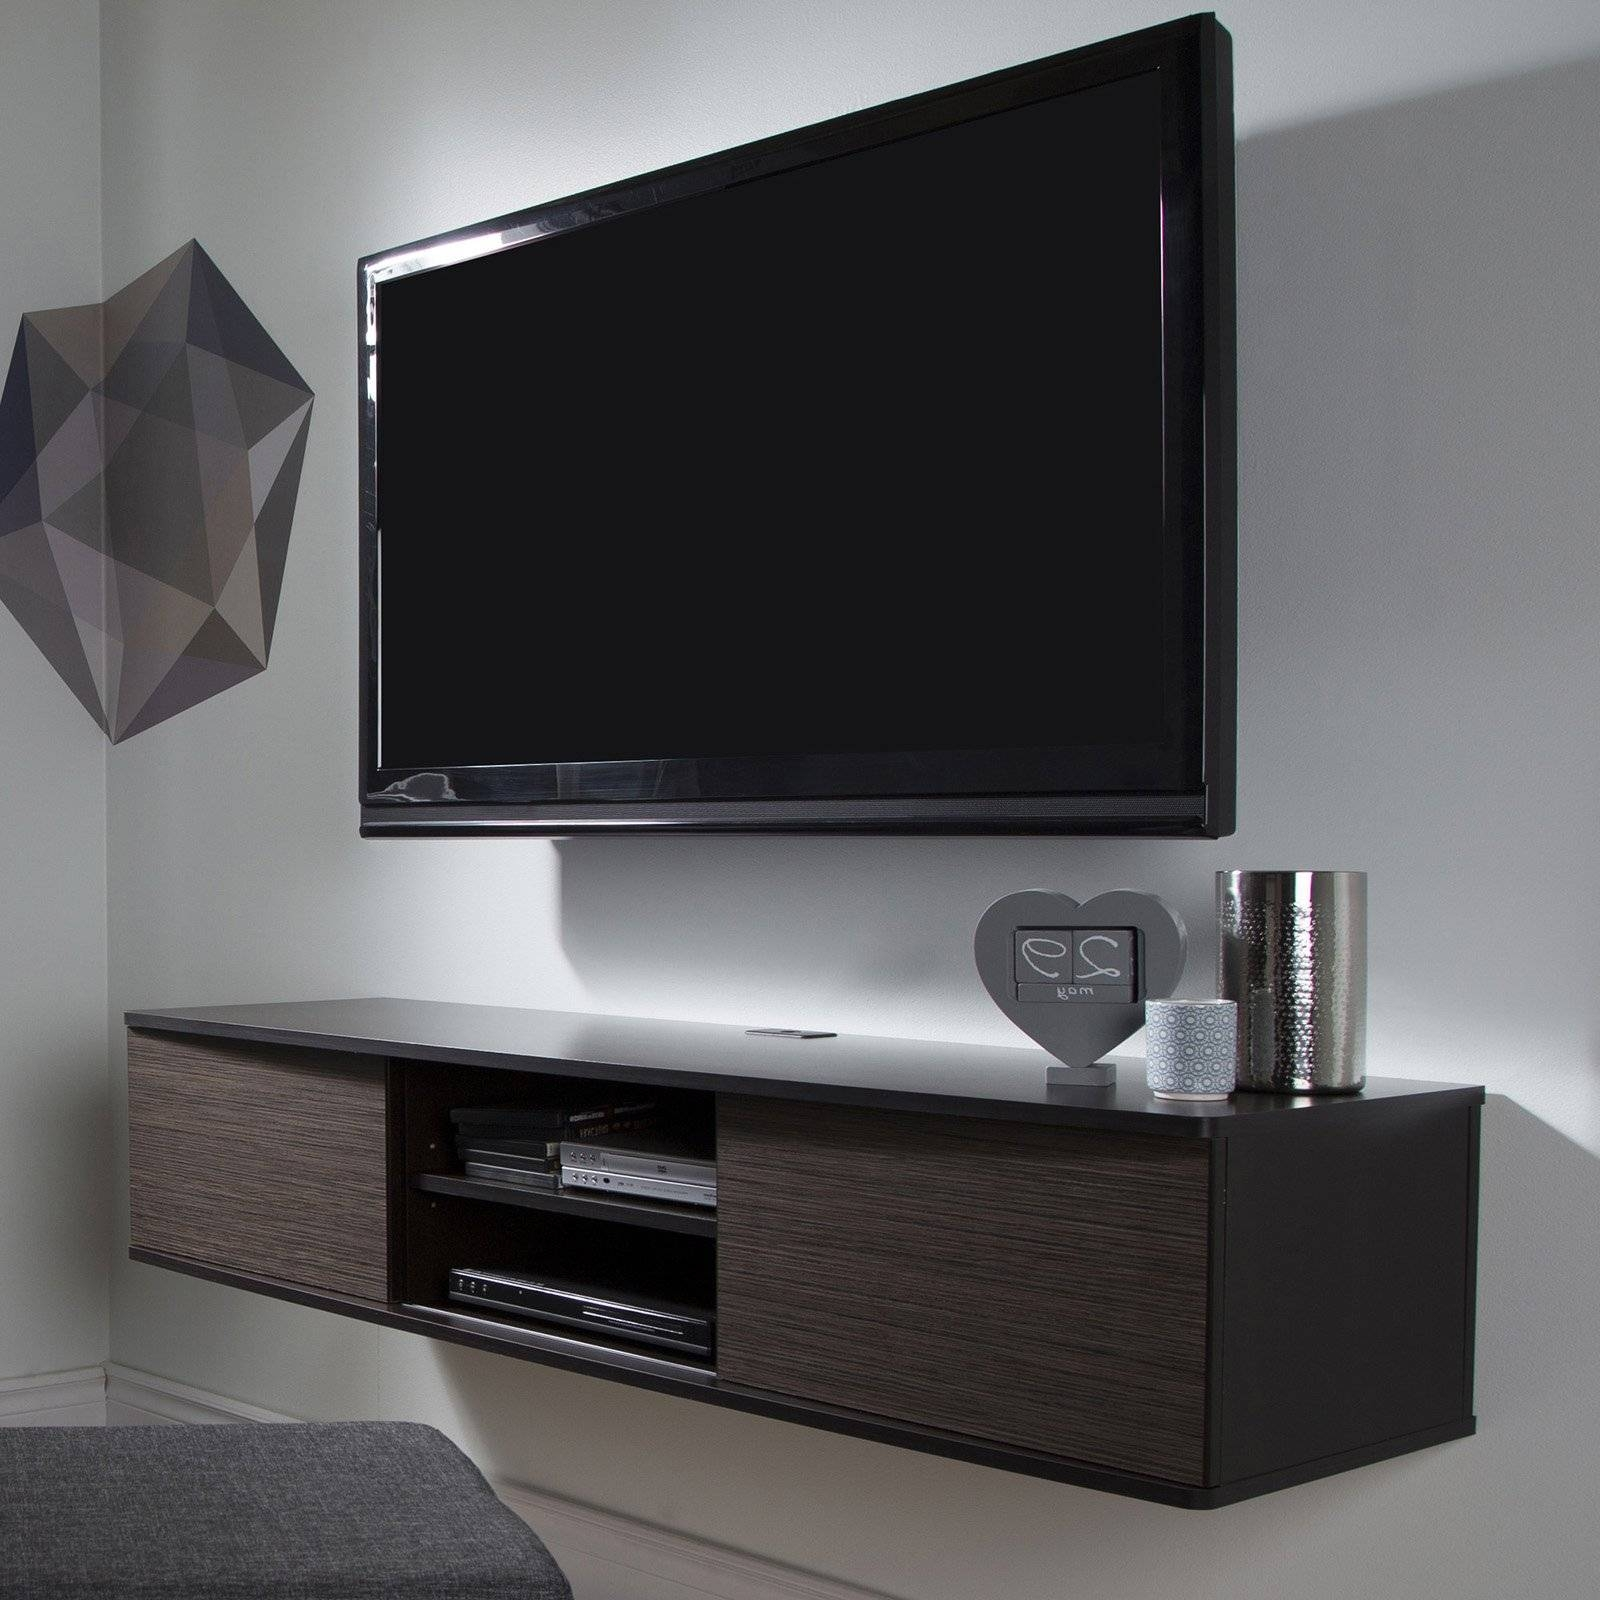 Contemporary & Modern Tv Stands | Hayneedle for Modern Style Tv Stands (Image 8 of 15)